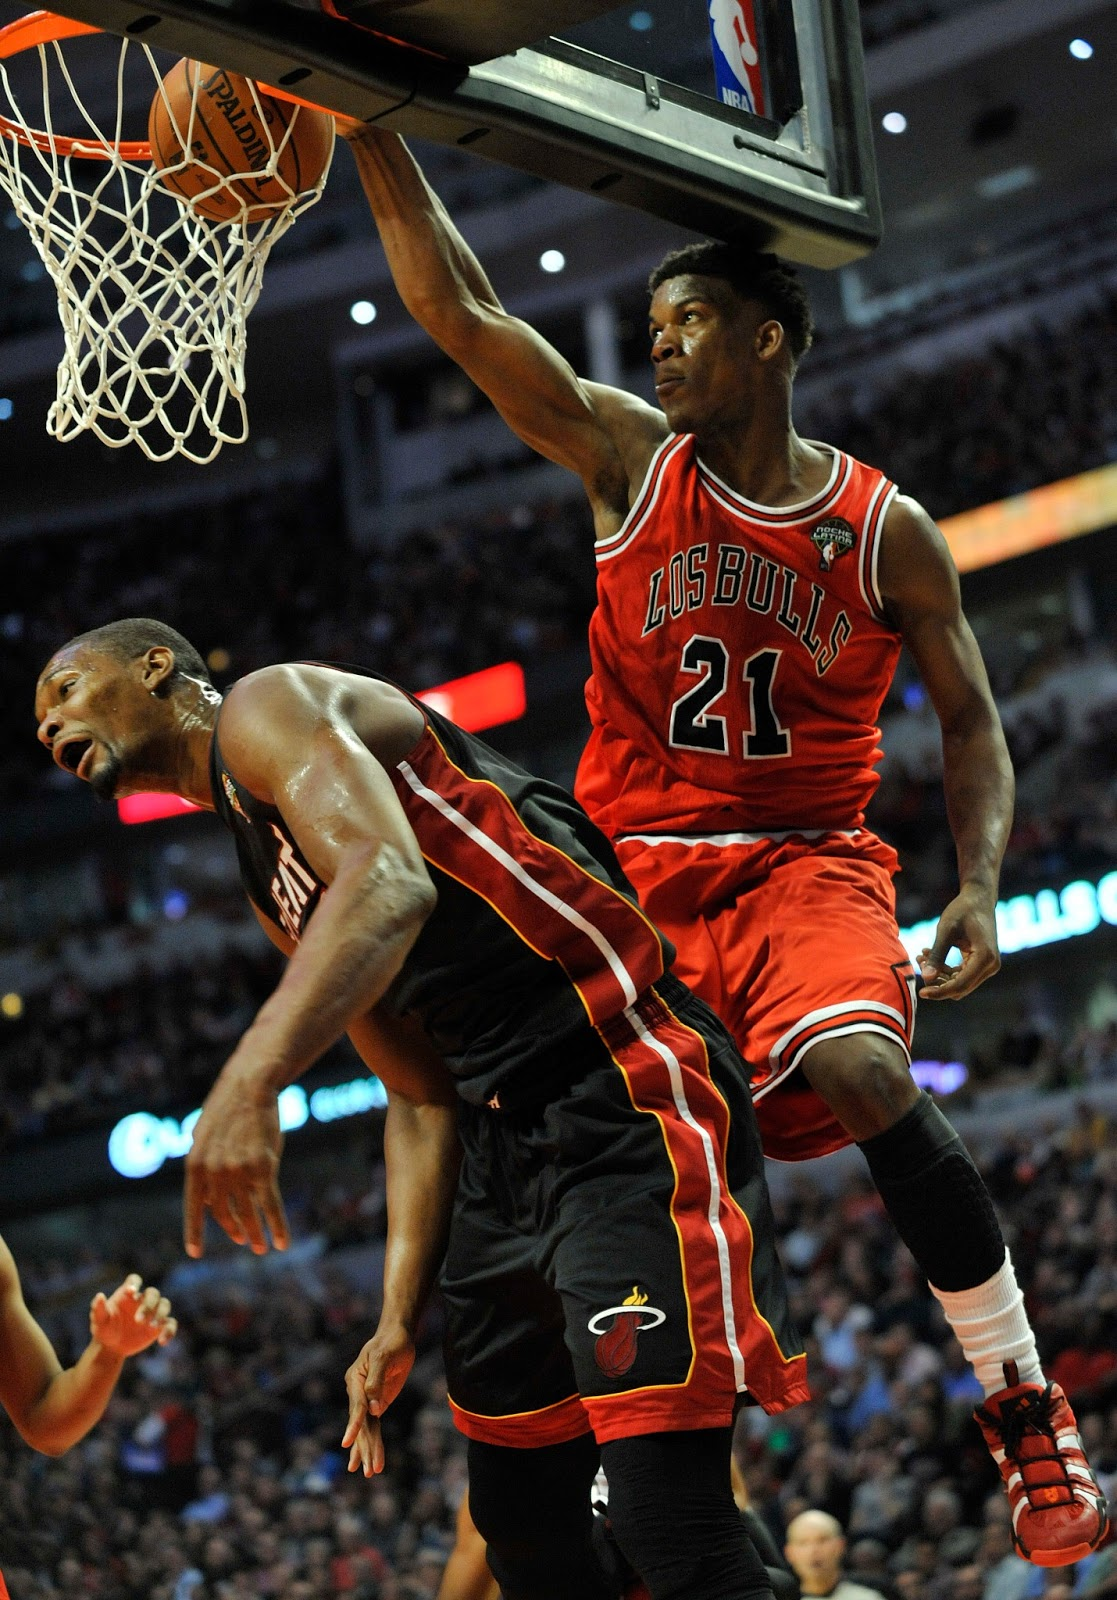 Tru school sports streak over the united center wednesday night on a 27 game winning streak and left with it snapped with a 101 97 loss to an undermanned bulls team no derrick rose voltagebd Choice Image